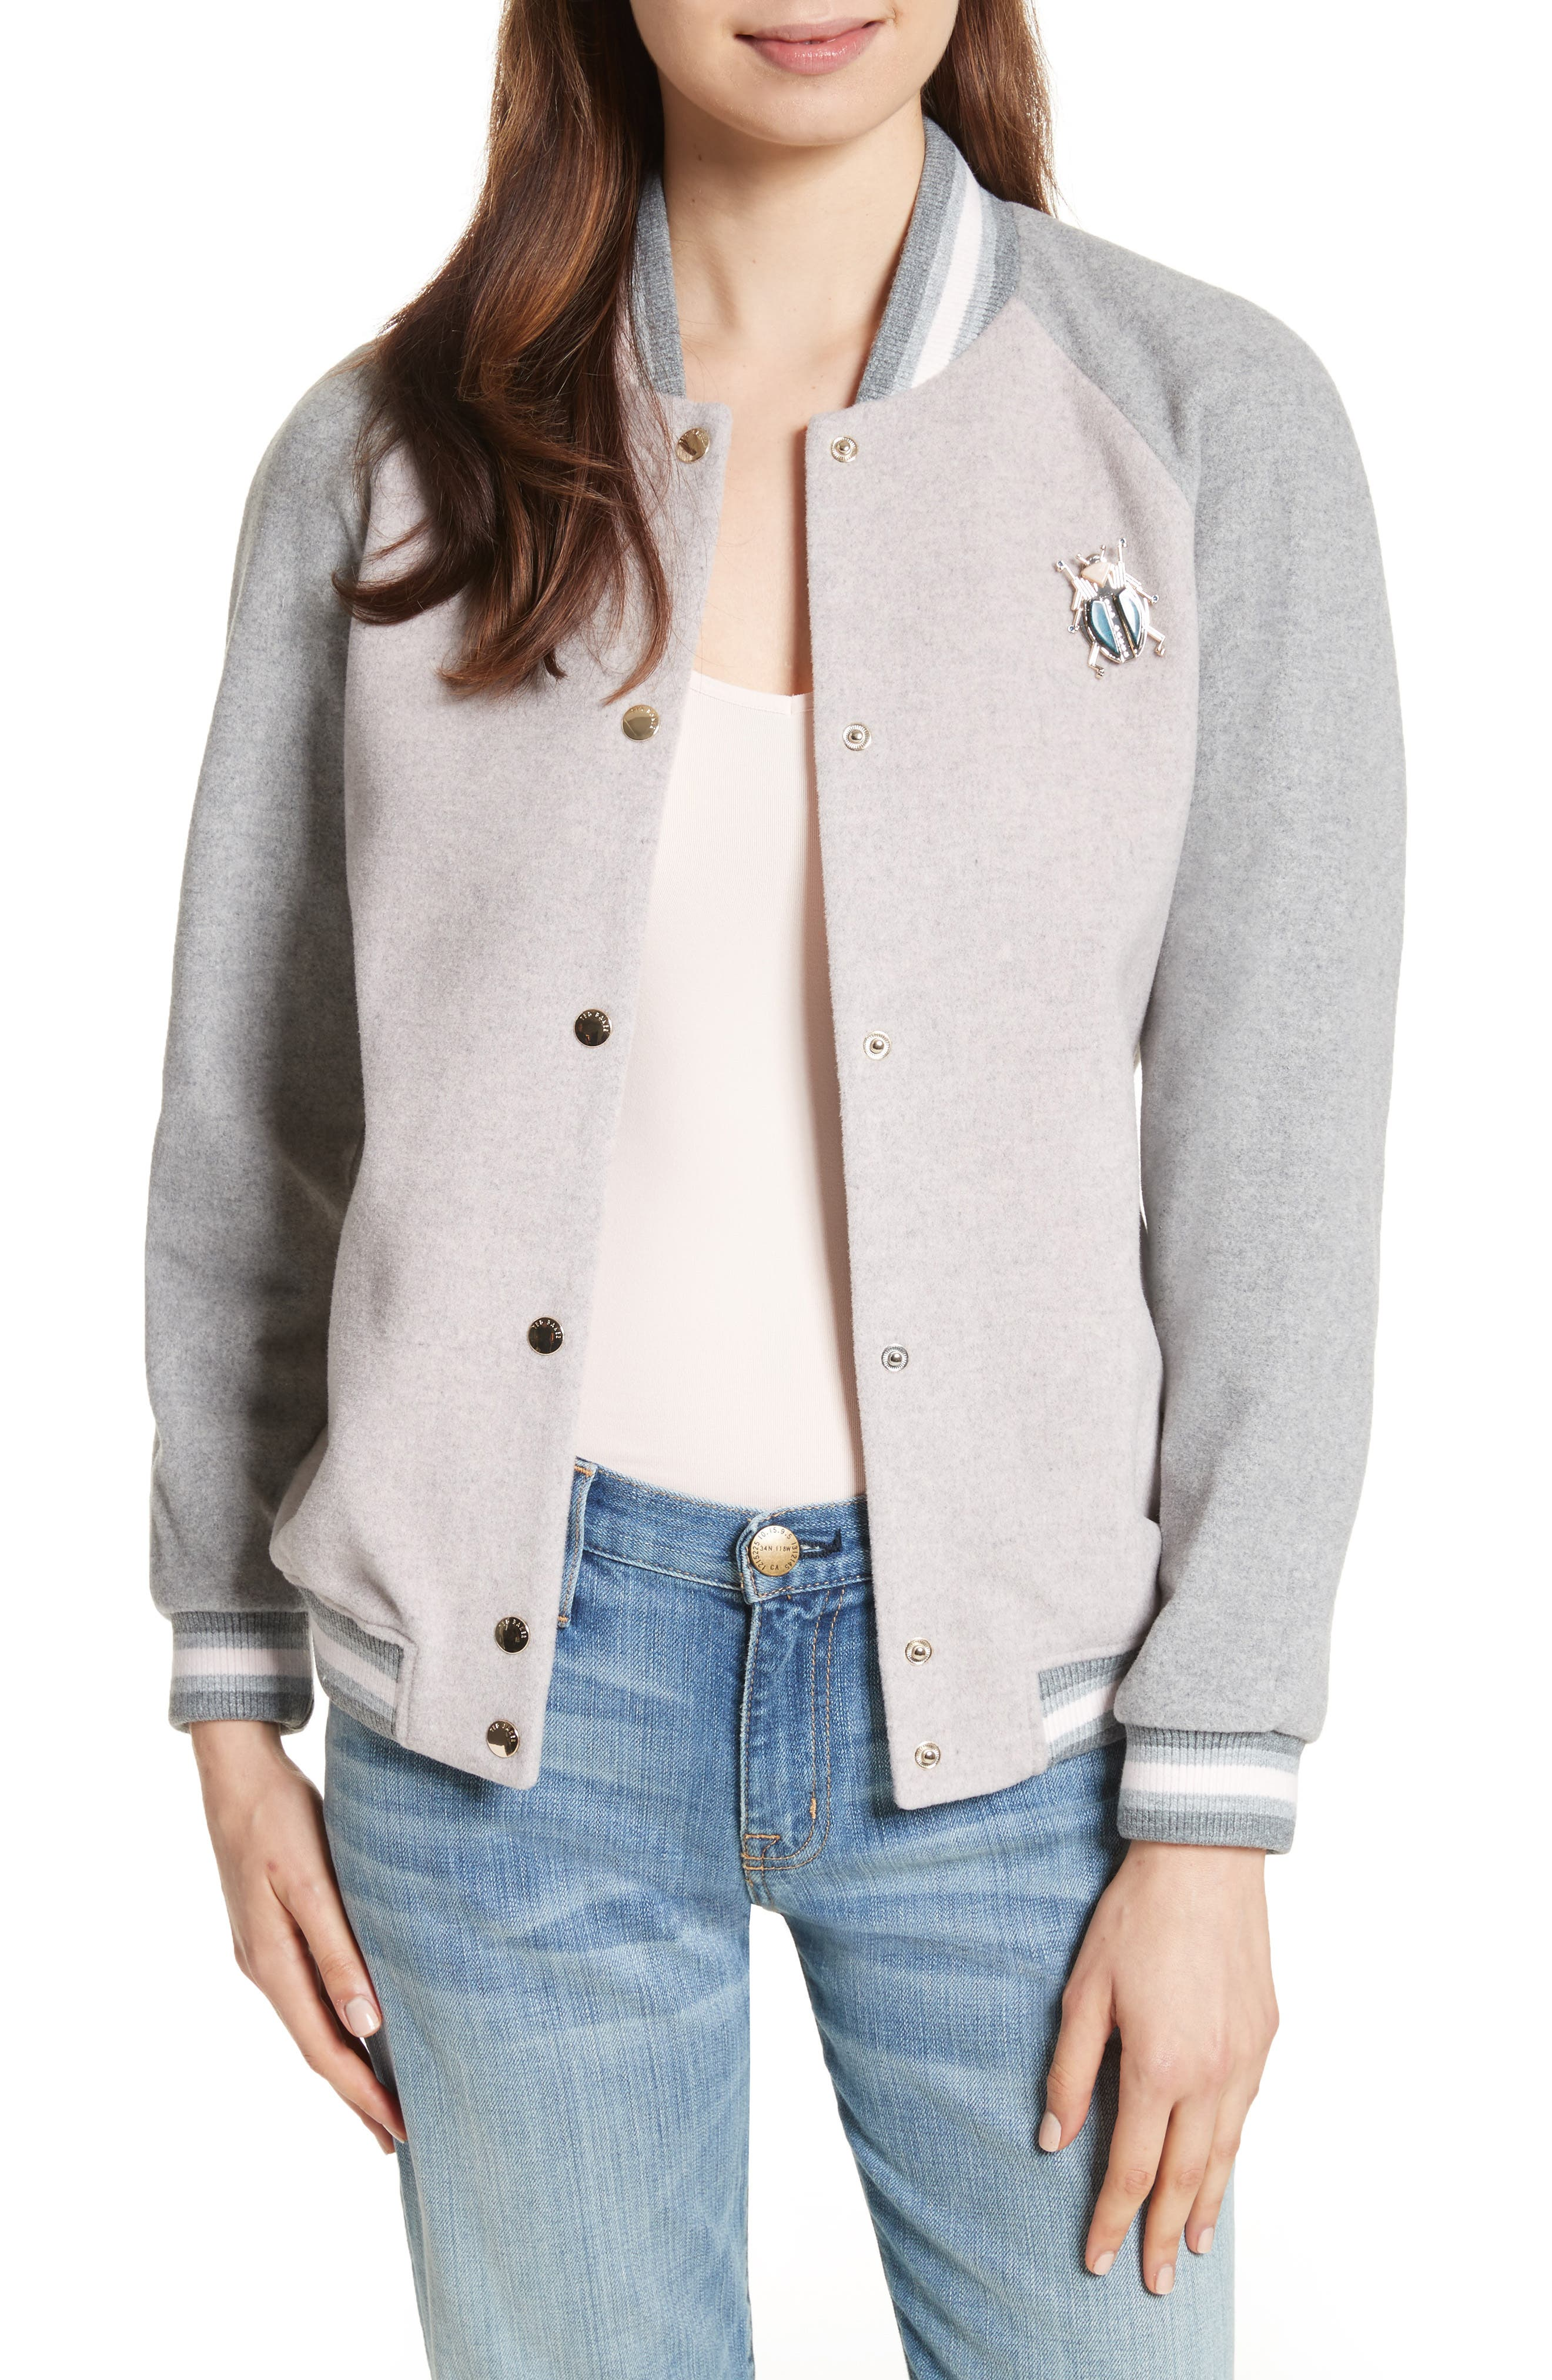 Augusta Embellished Bomber Jacket,                             Main thumbnail 1, color,                             Dusky Pink